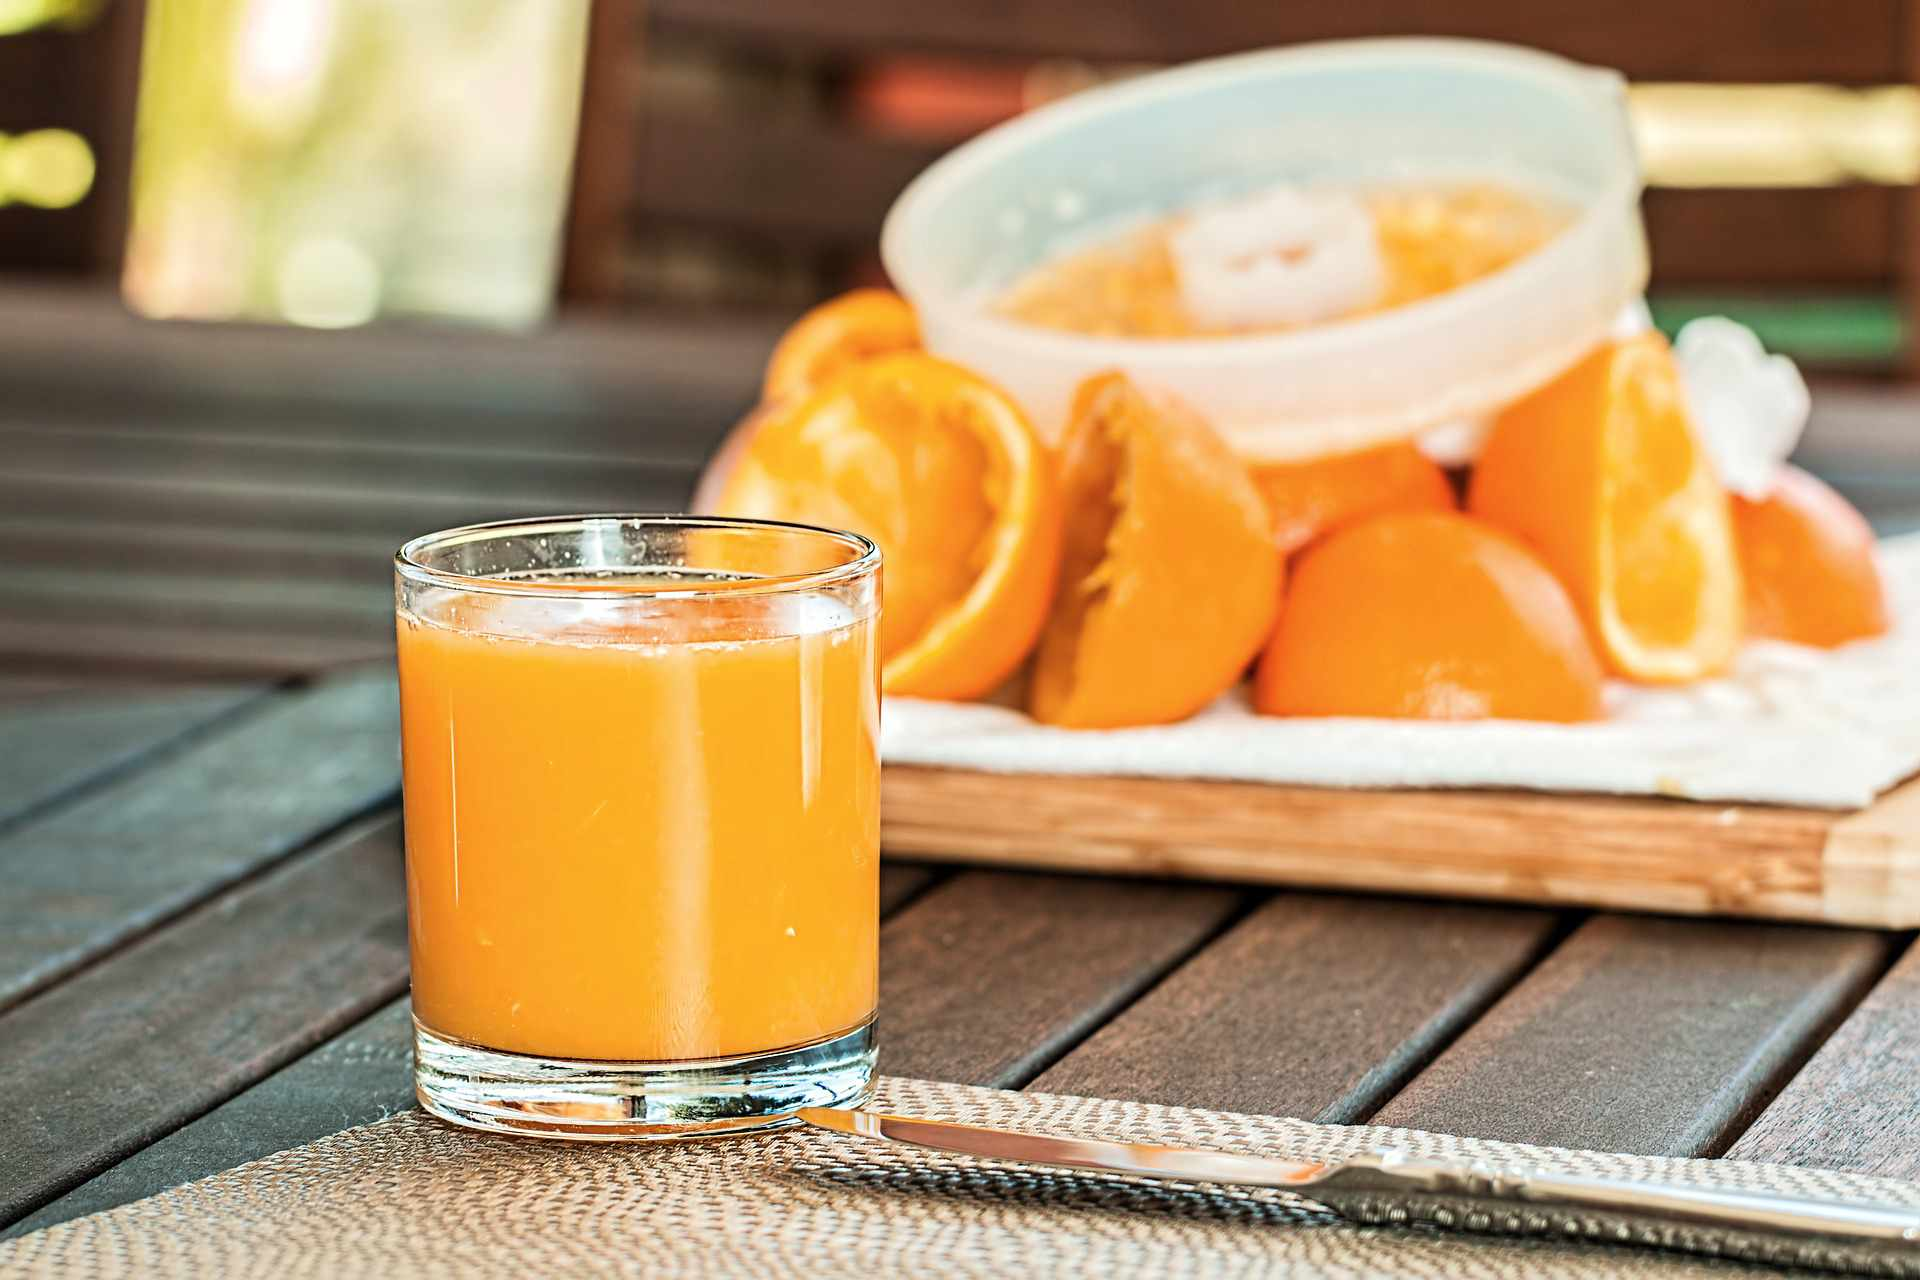 Glass of orange juice, oranges, and juicer on a wooden table.